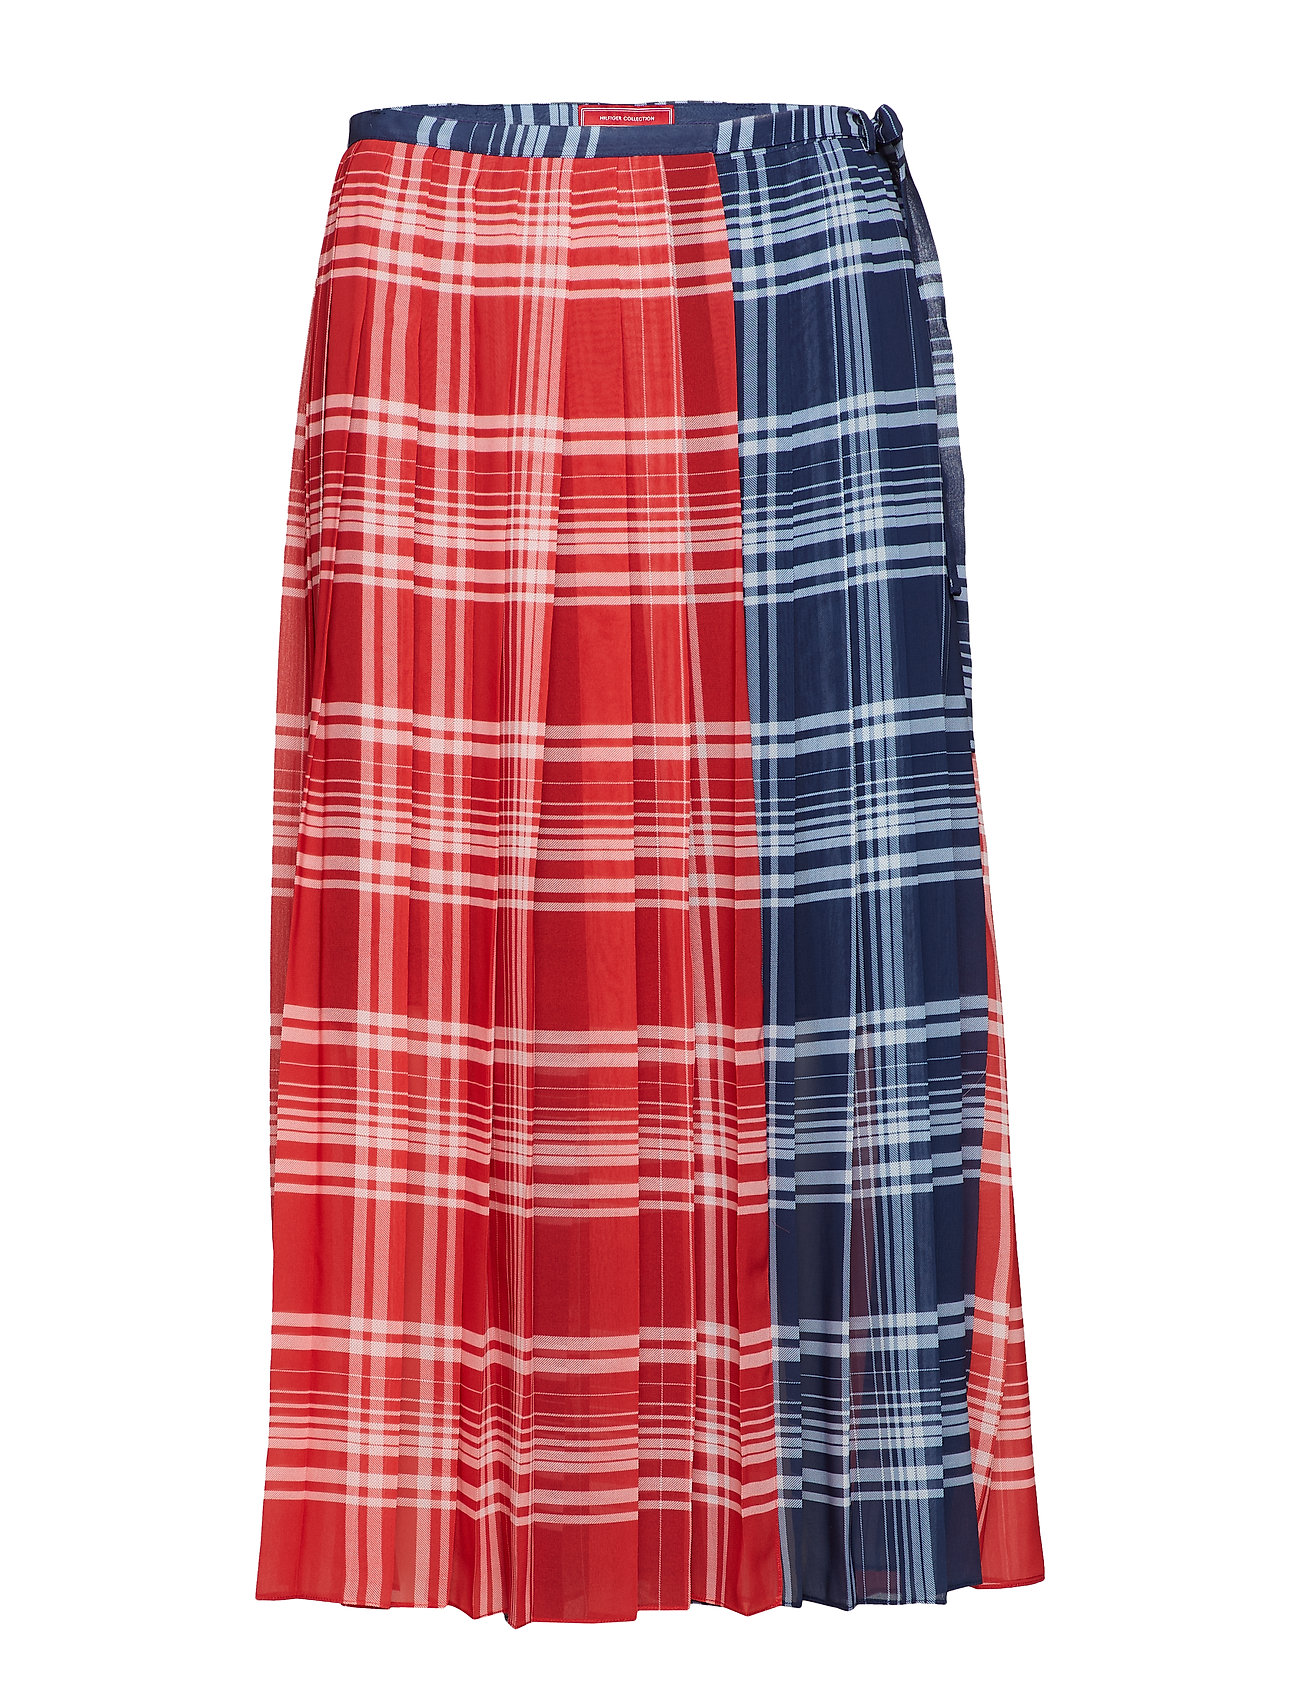 Collection Pleated RedMultiHilfiger Pleated RedMultiHilfiger Pleated Wraptrue Collection Wraptrue Madras Madras Wraptrue RedMultiHilfiger Madras mONwyn0v8